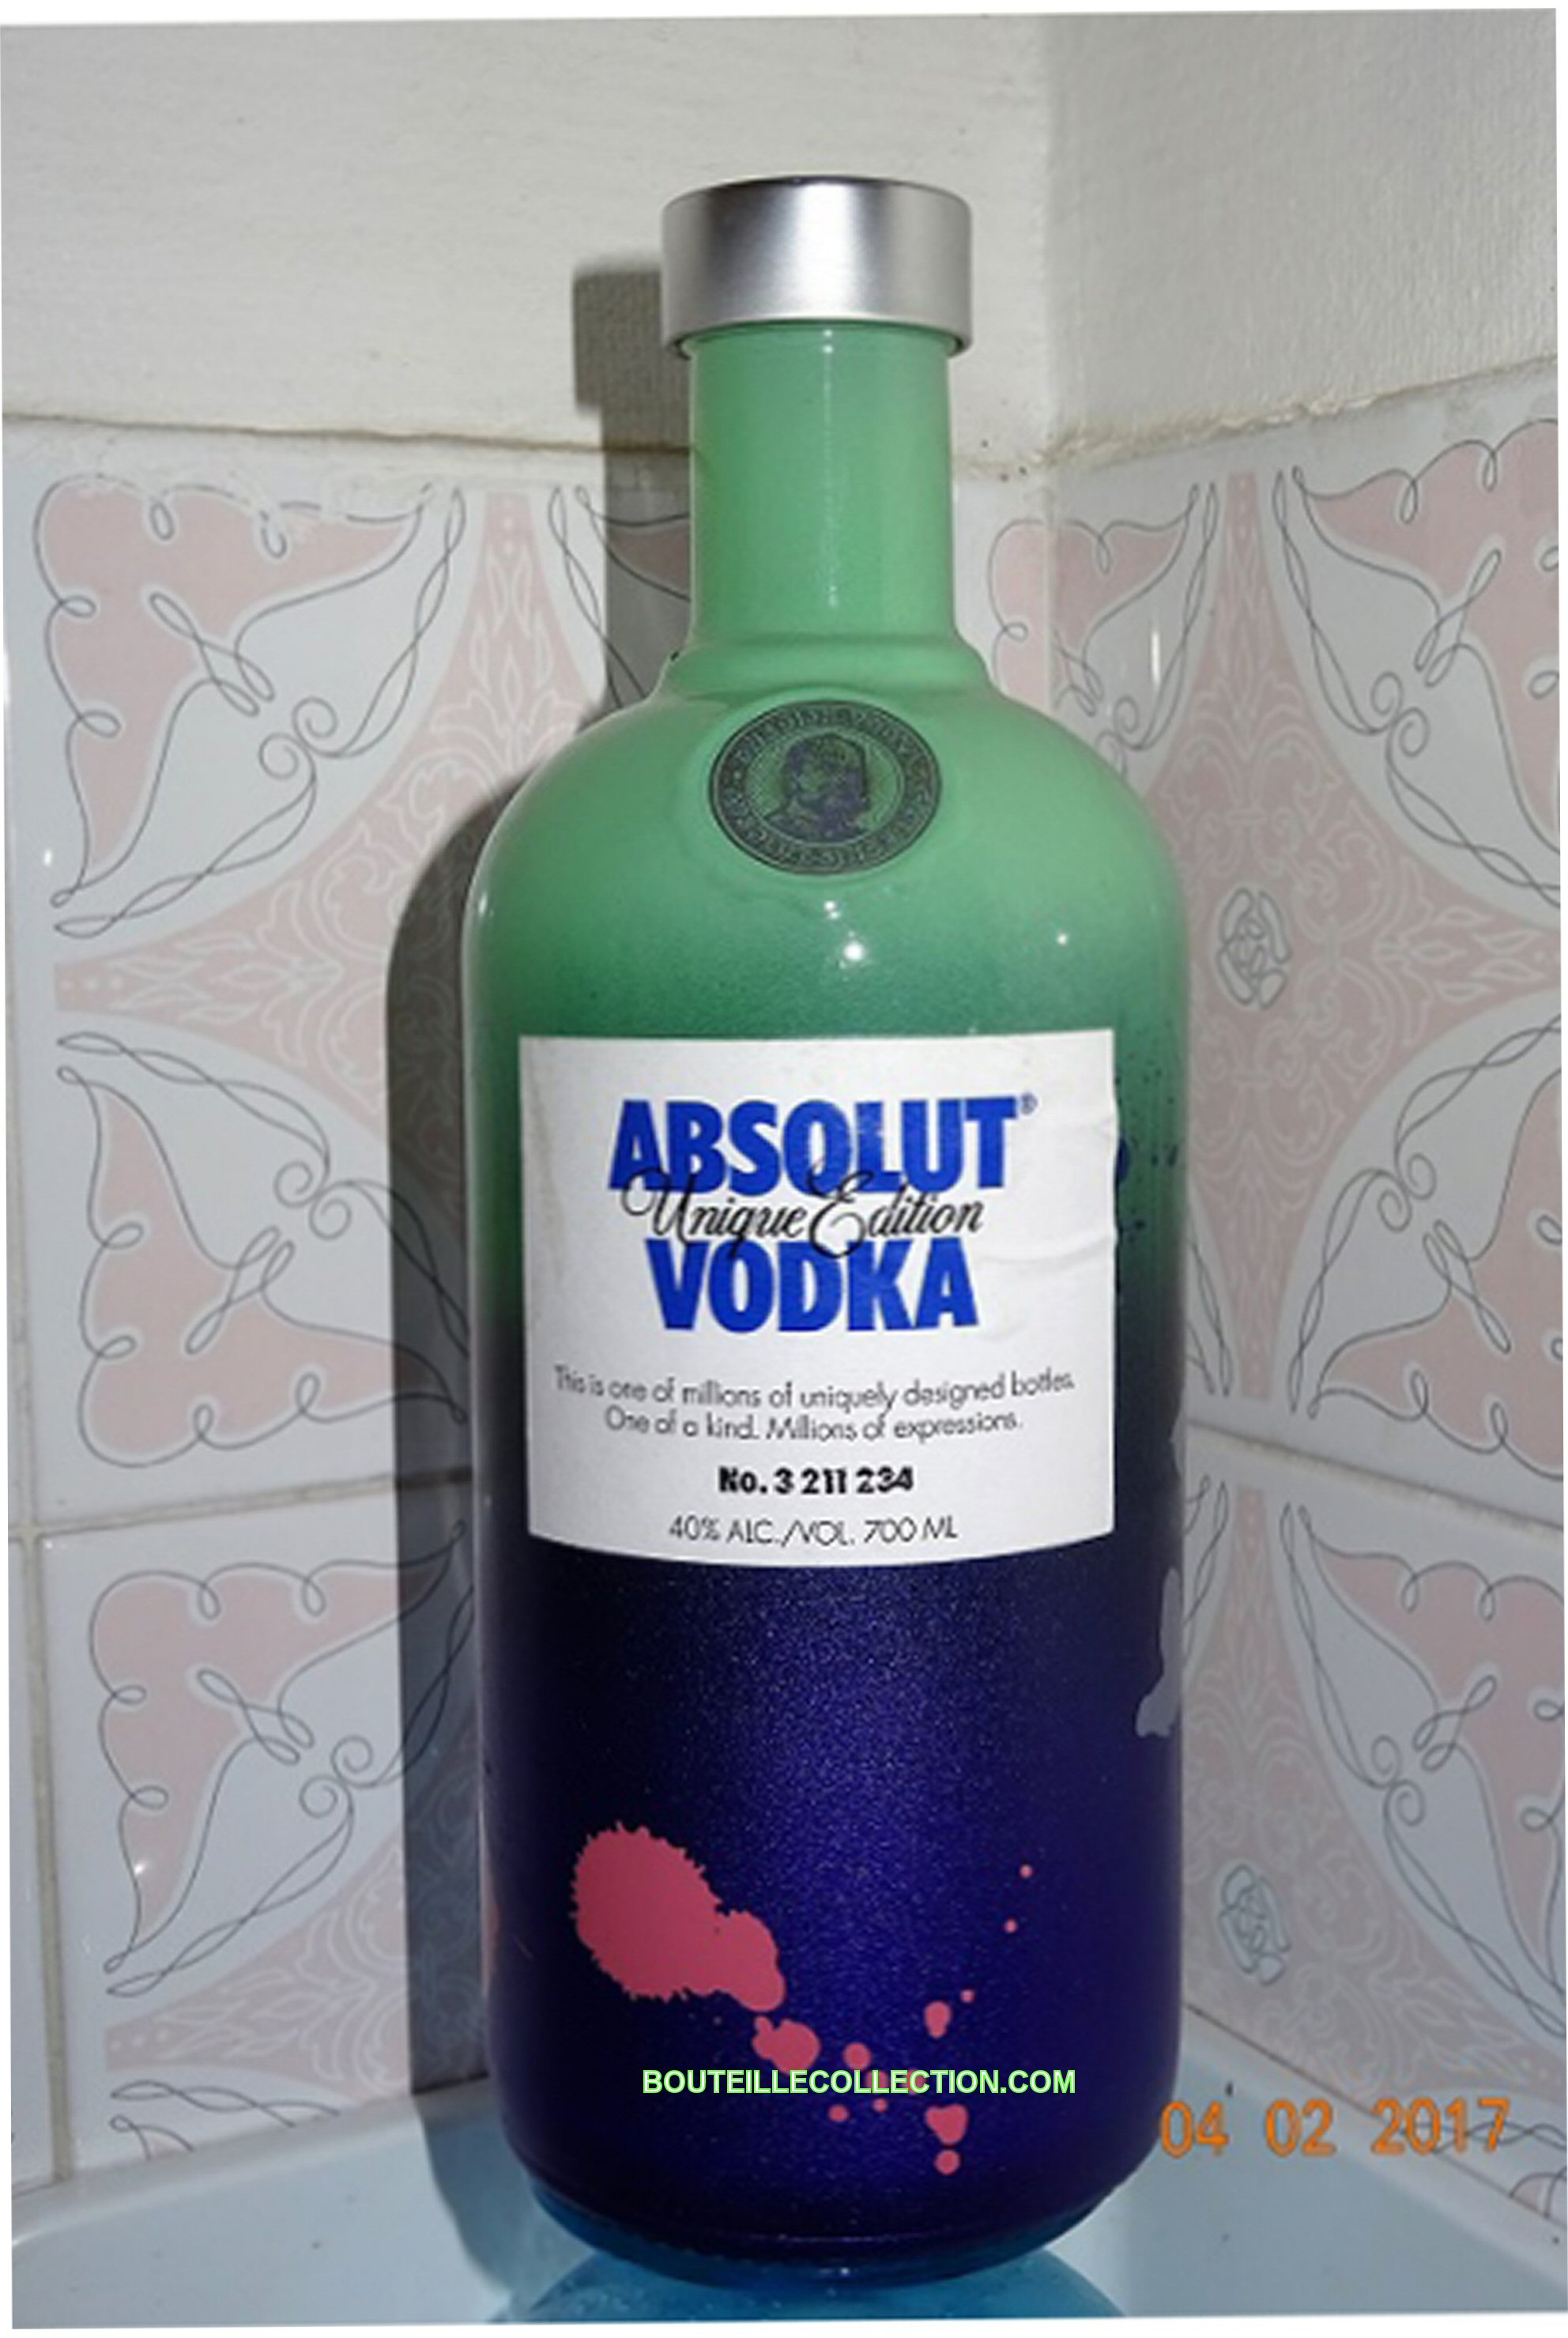 ABSOLUT UNIQUE EDITION 70CL AB .JPG